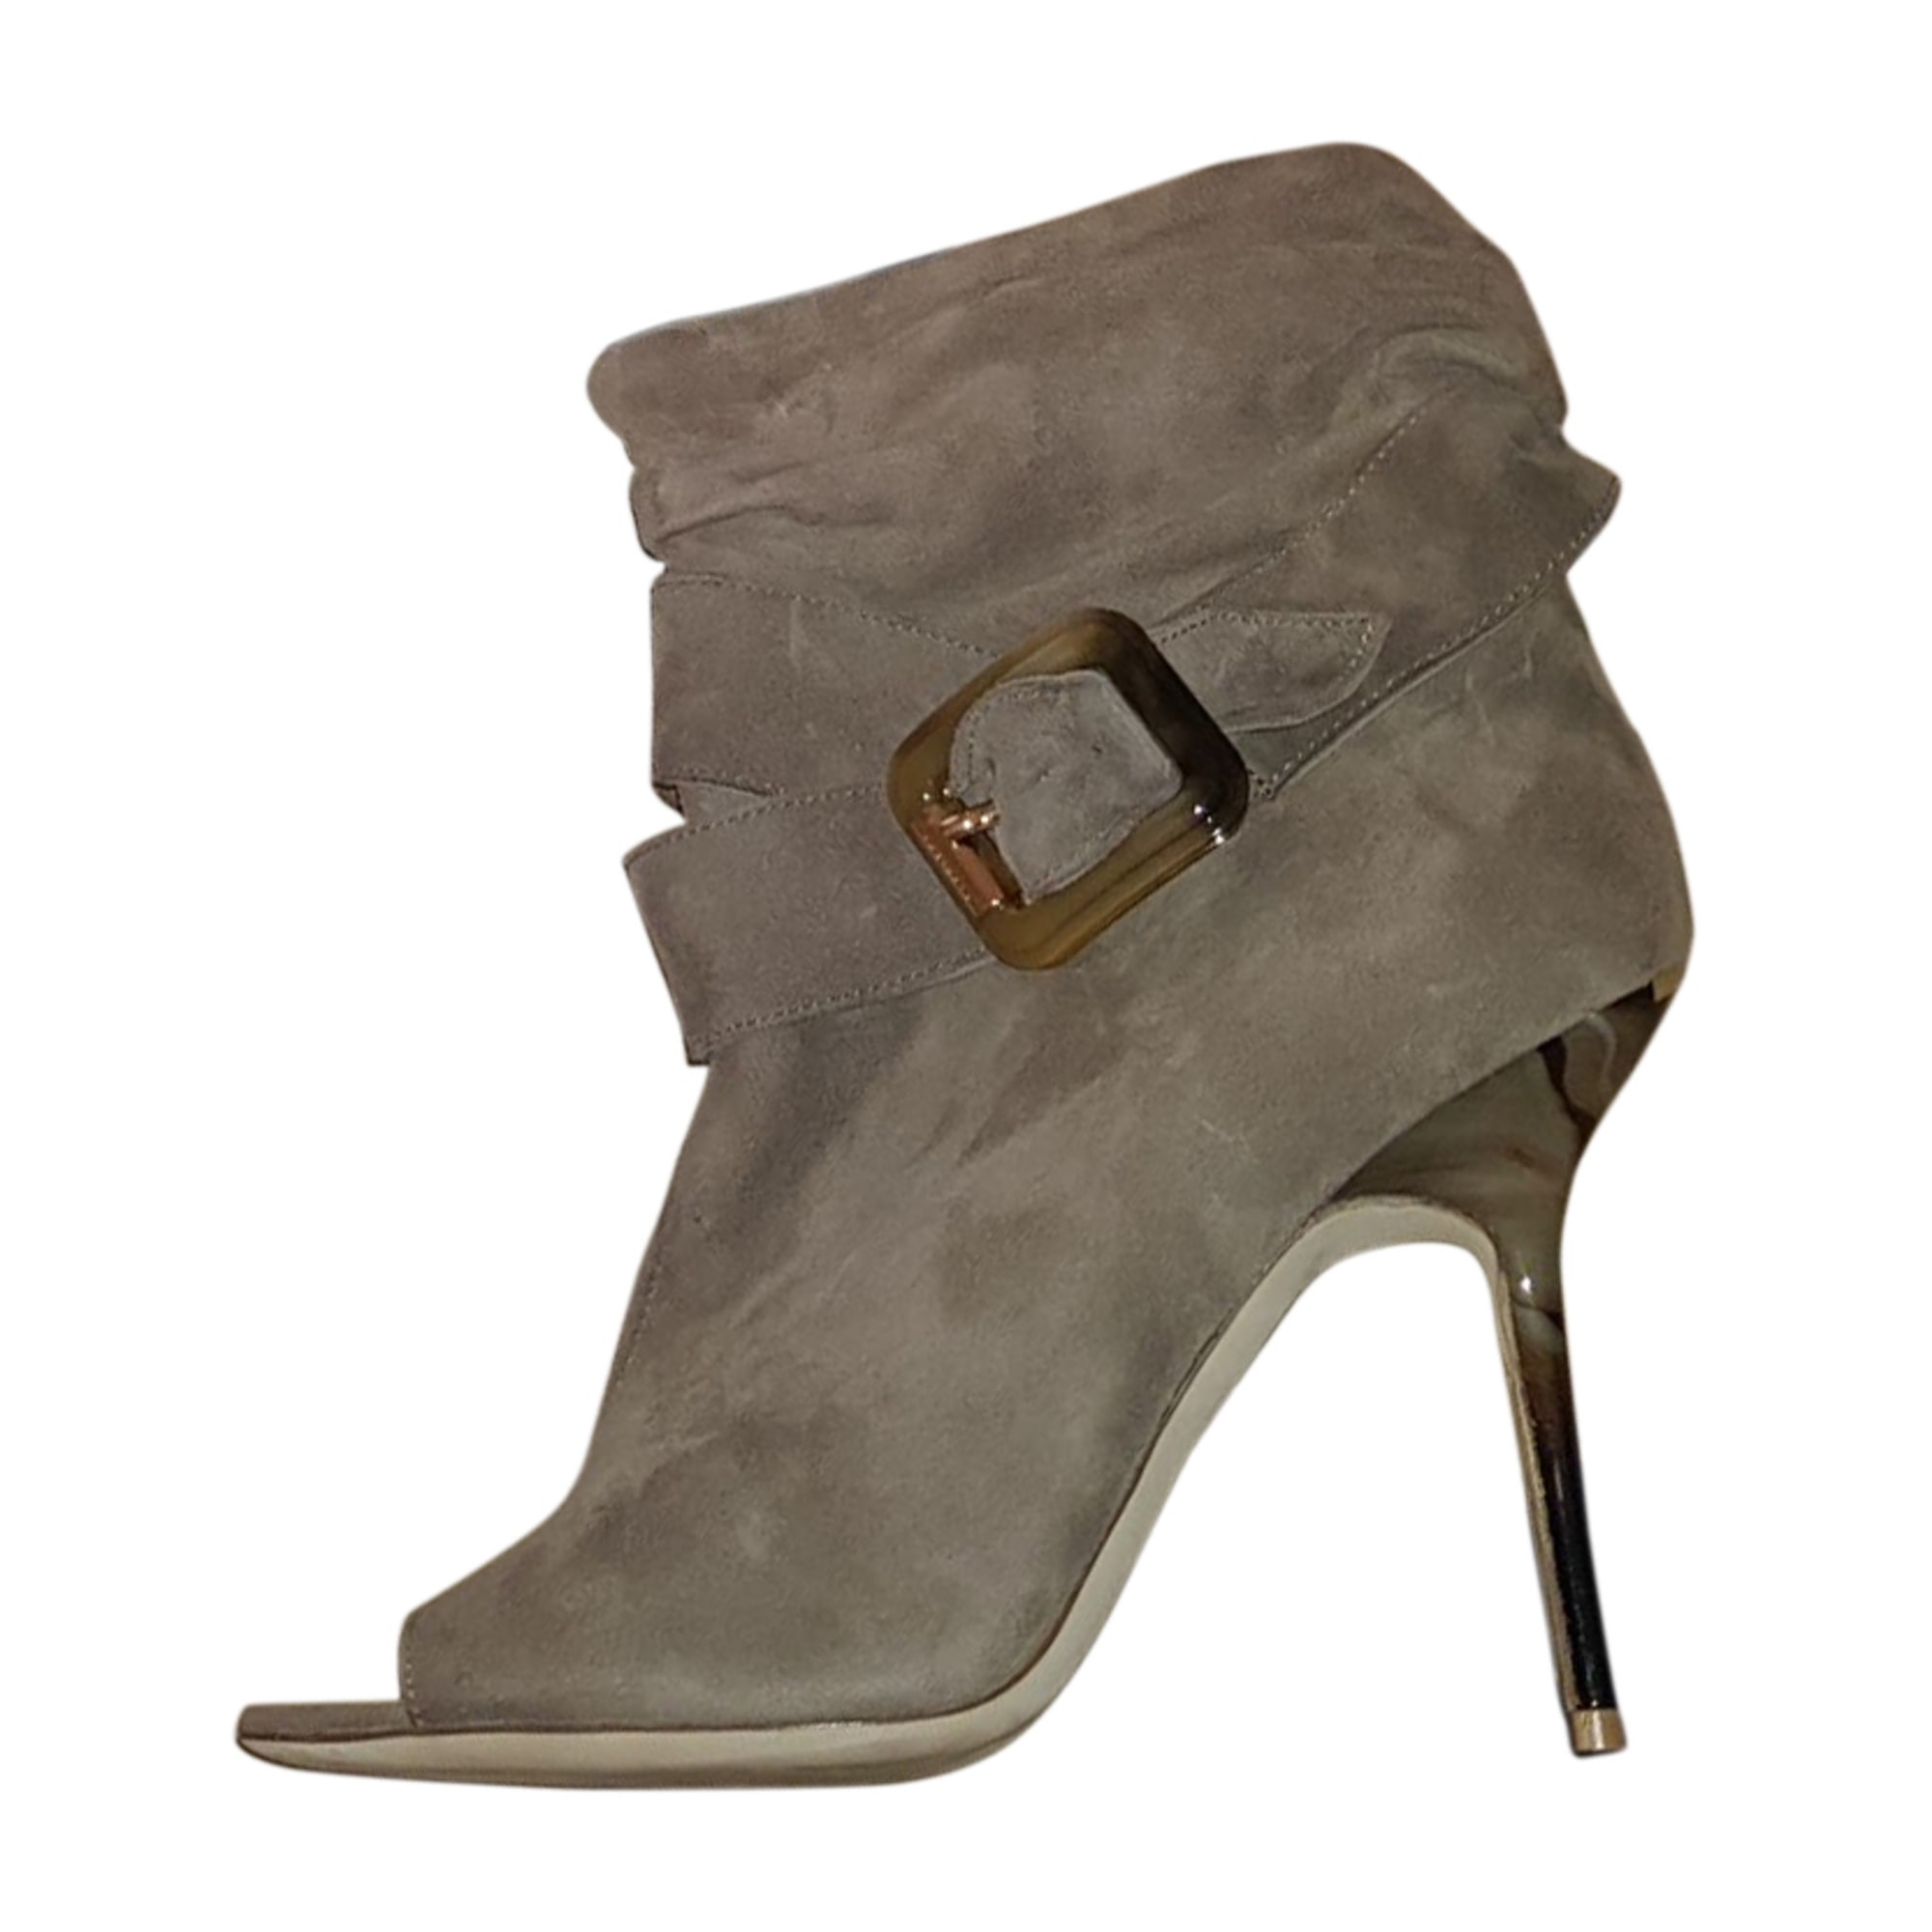 Bottines & low boots à talons BURBERRY Beige, camel